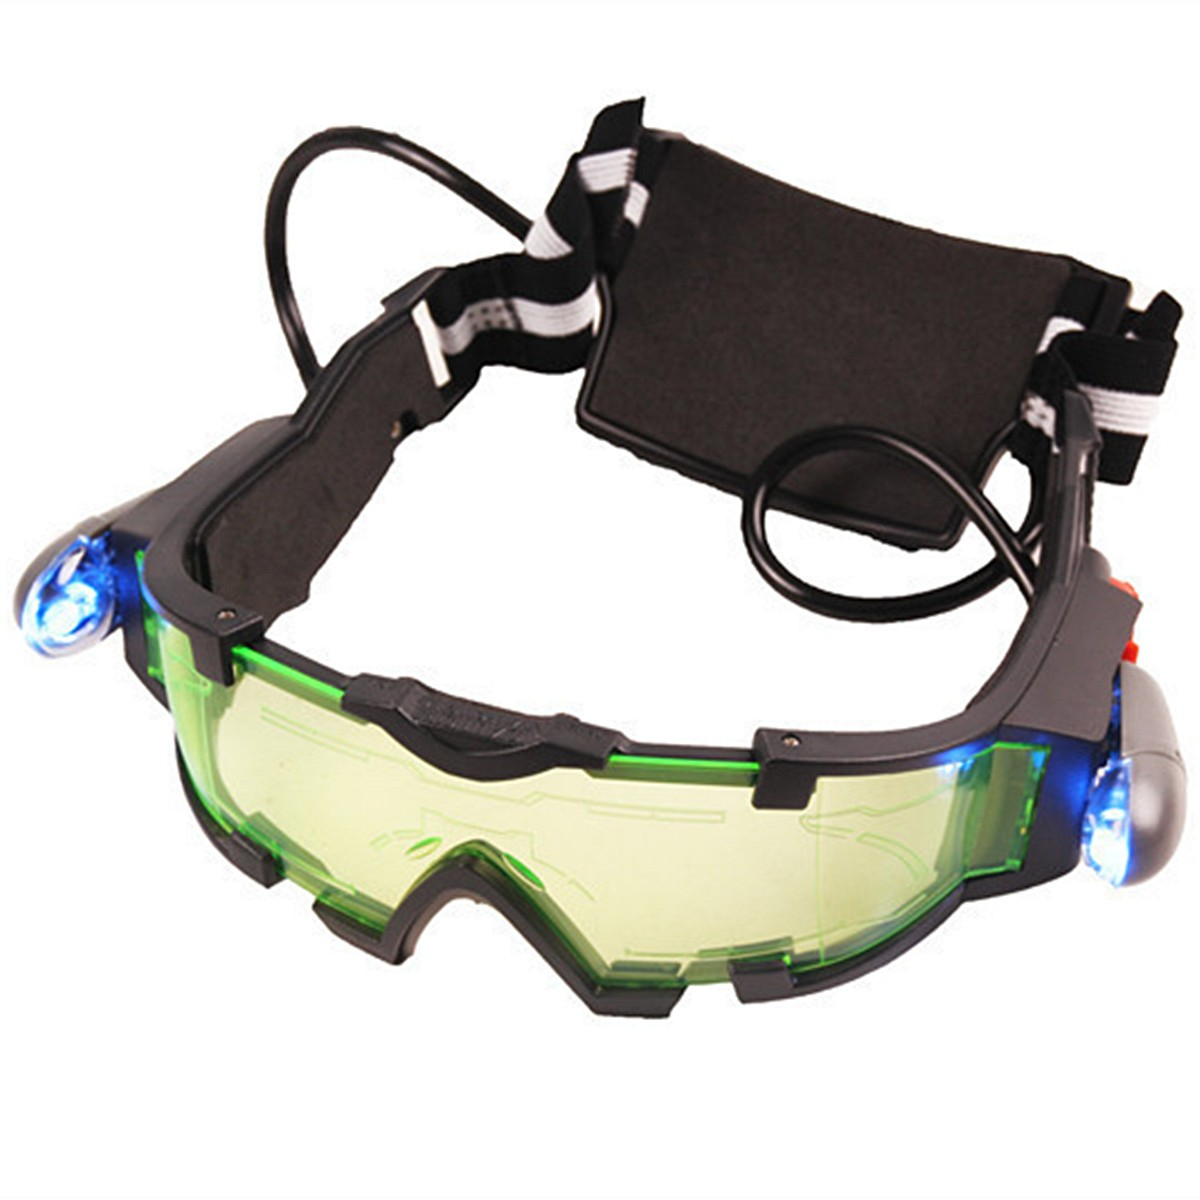 NEW Adjustable ElasticMilitary Night Vision Goggles Glasses Security Eyeshield Workplace Safety Eye Protection new polarized driving sunglasses glasses mirror night and day dimming night vision glasses